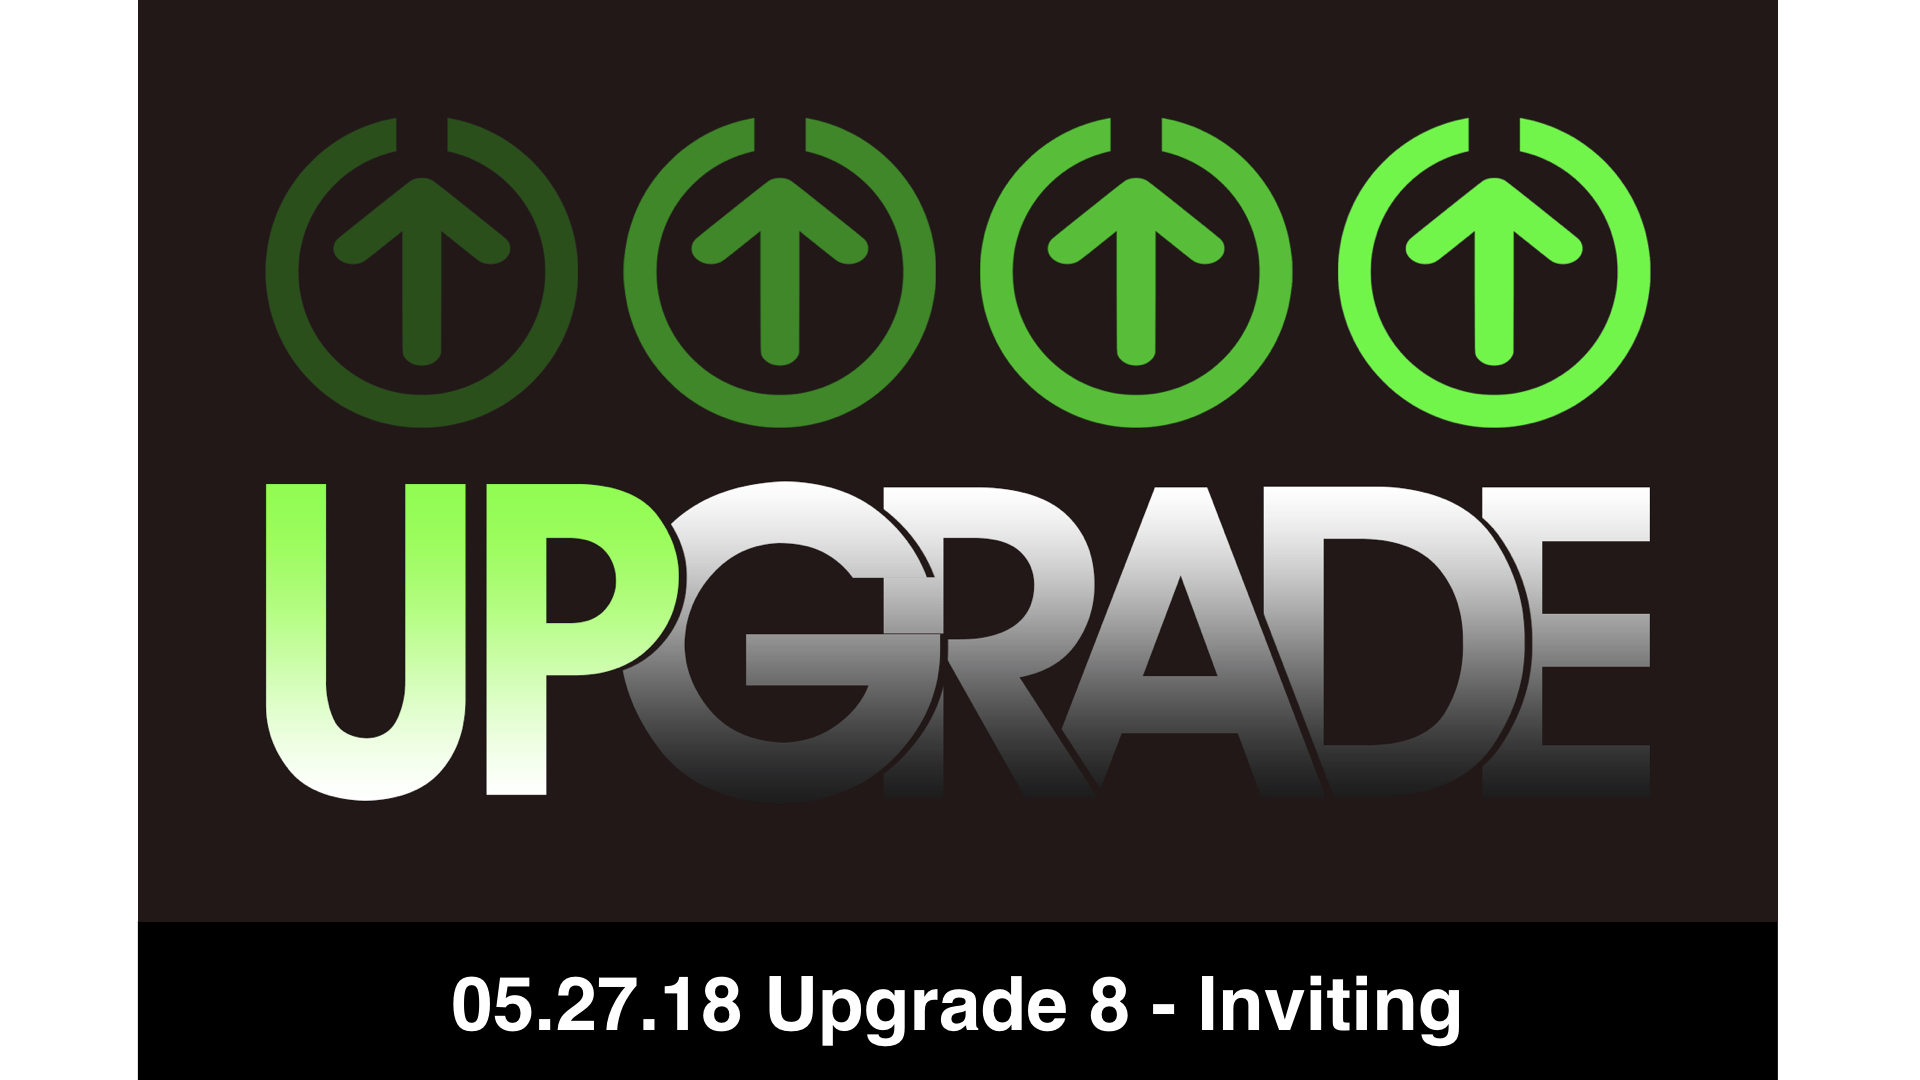 05.27.18 Upgrade 8 - Inviting